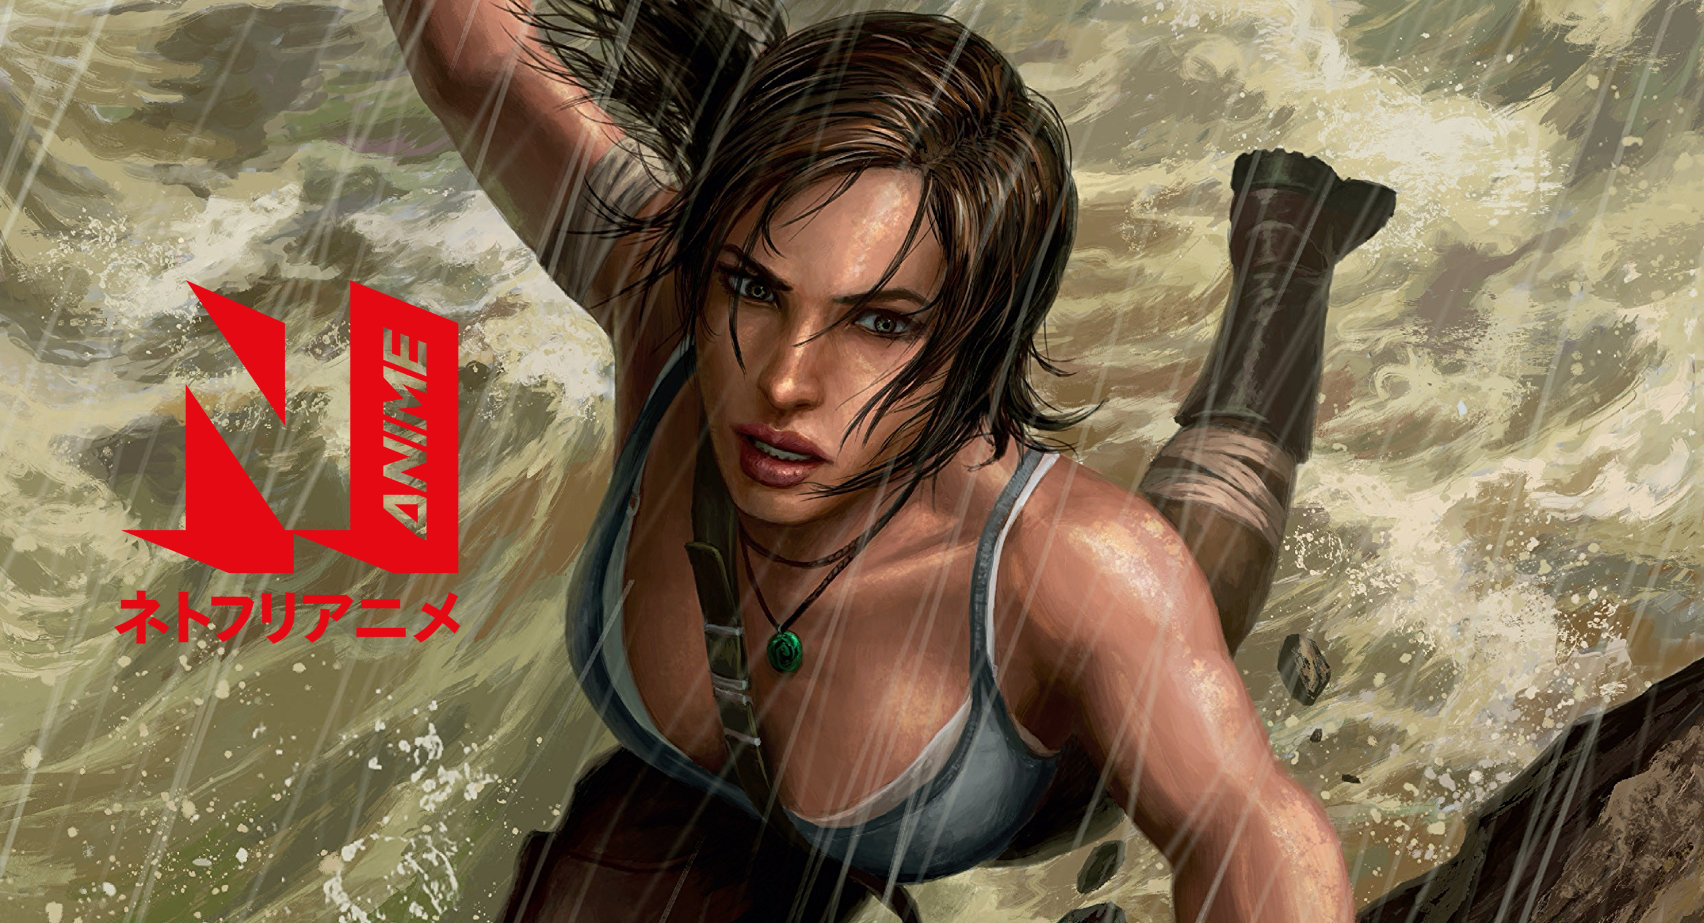 Netflix to Produce a Tomb Raider Anime